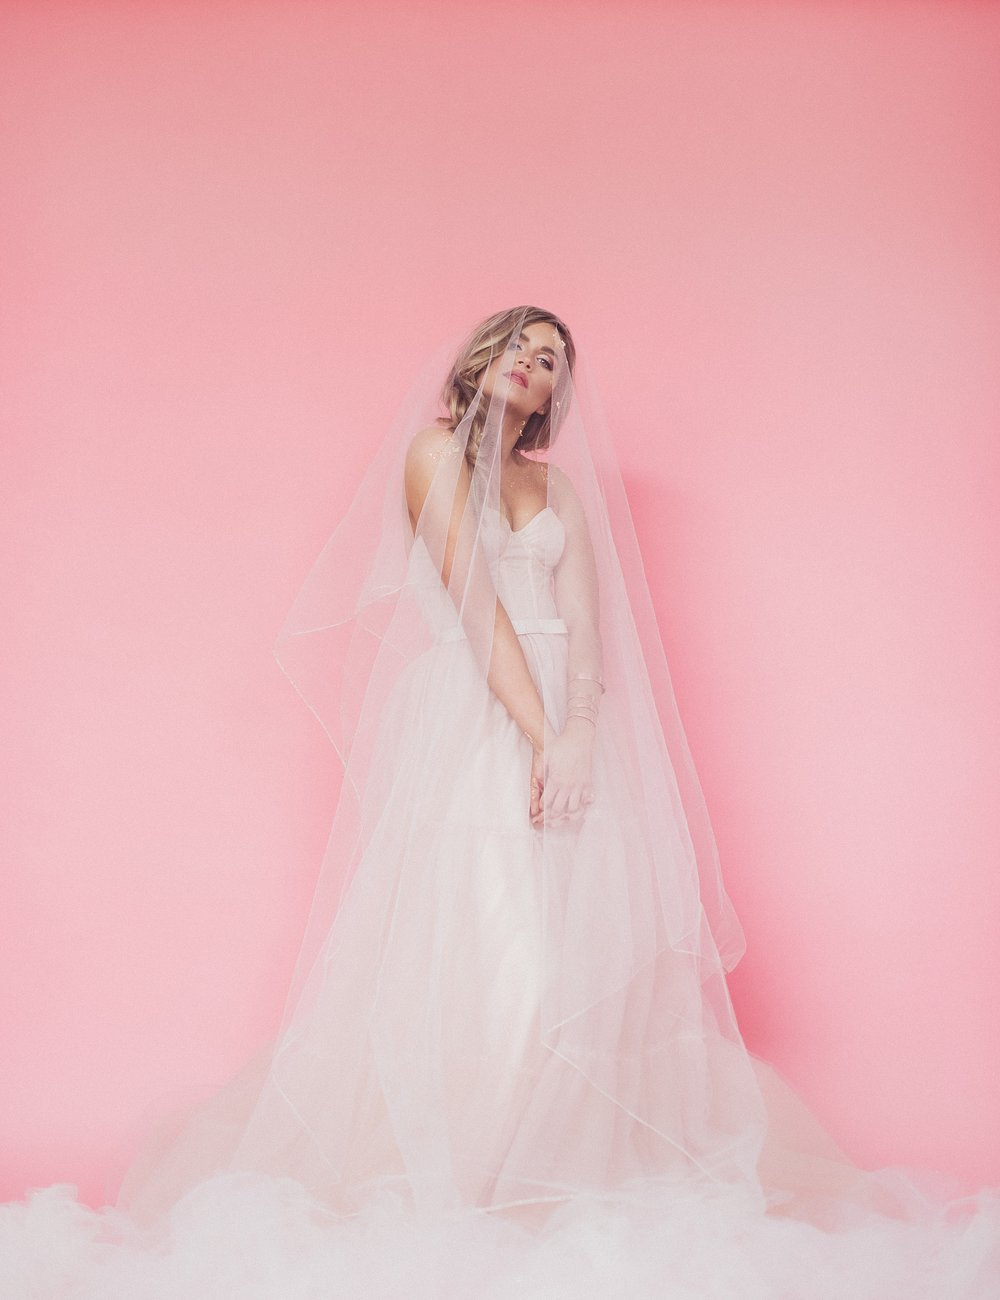 Eden Strader Pink Editorial Bridals